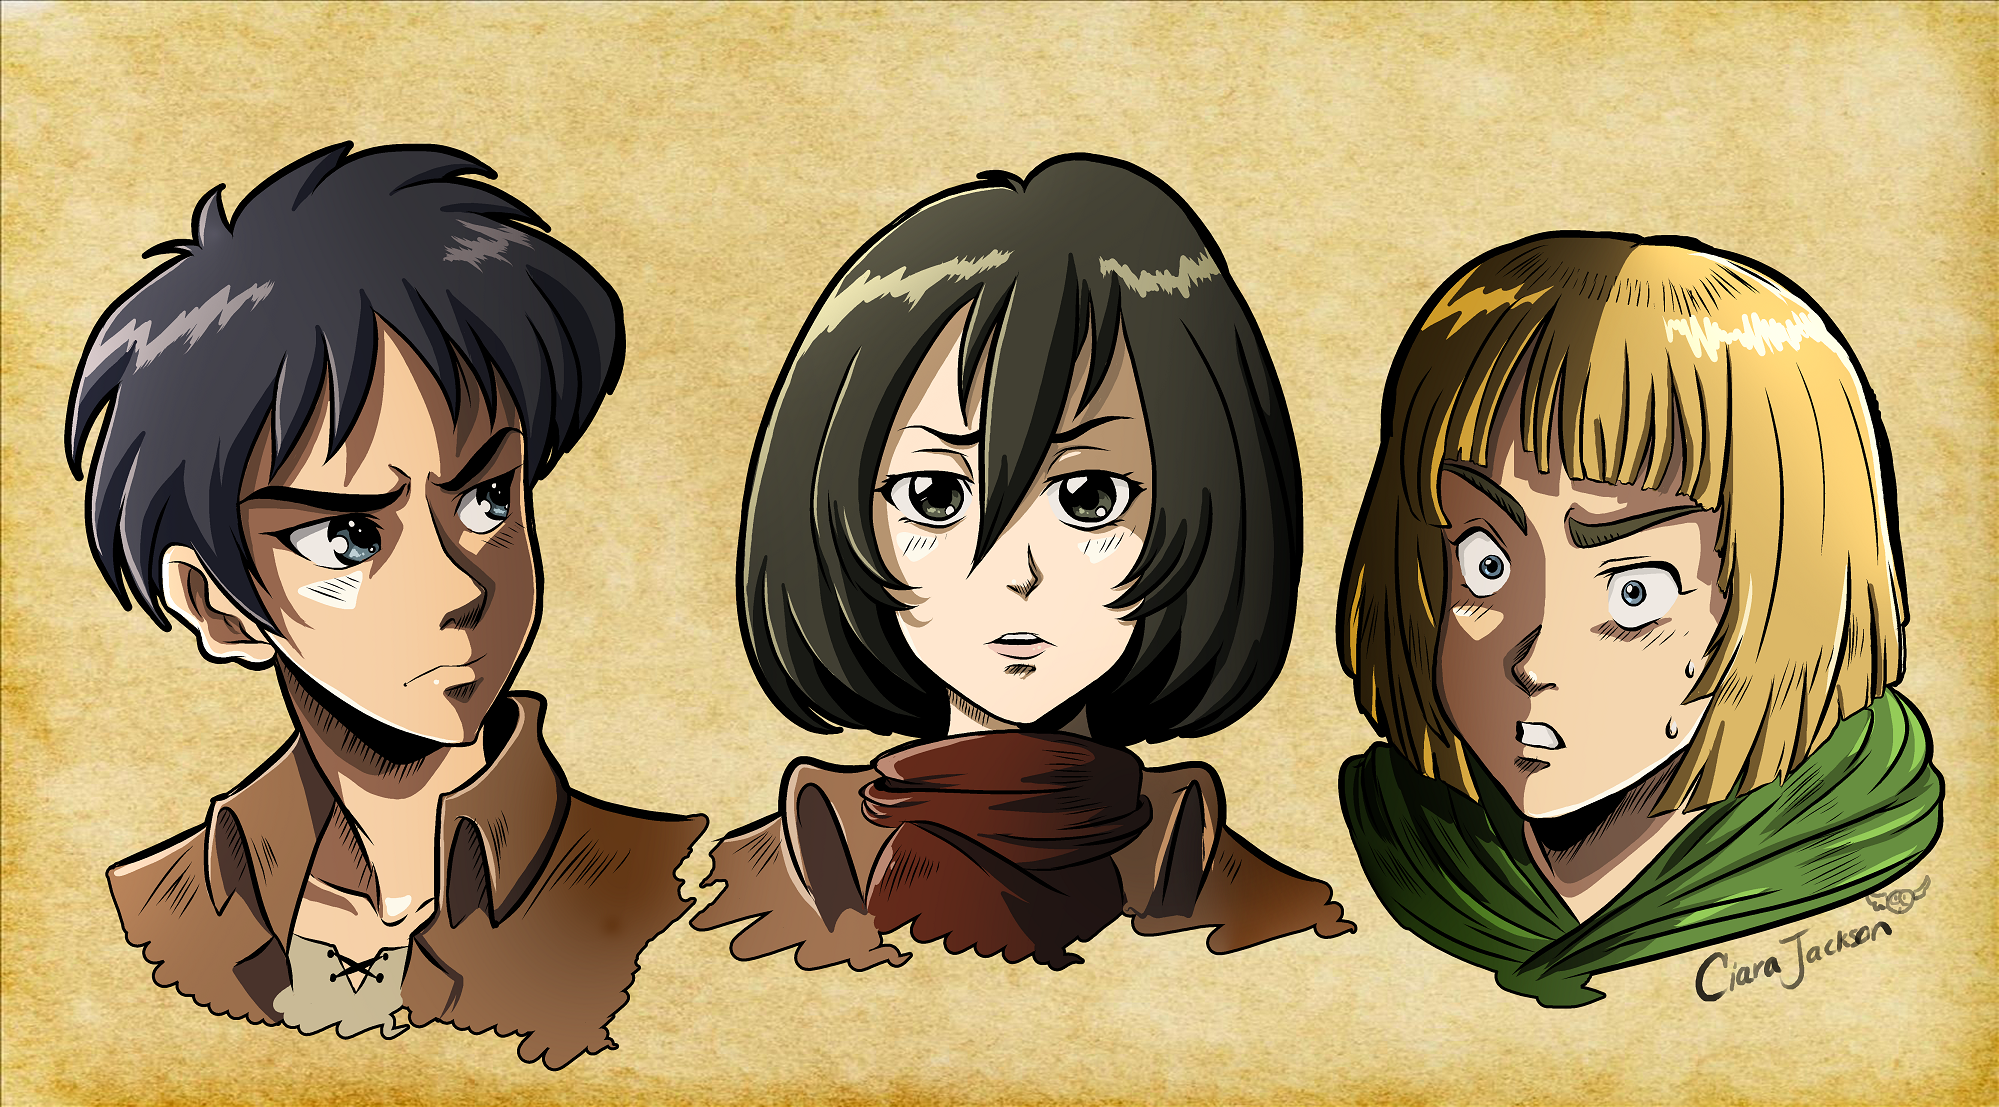 Colored 90s Attack on Titan!